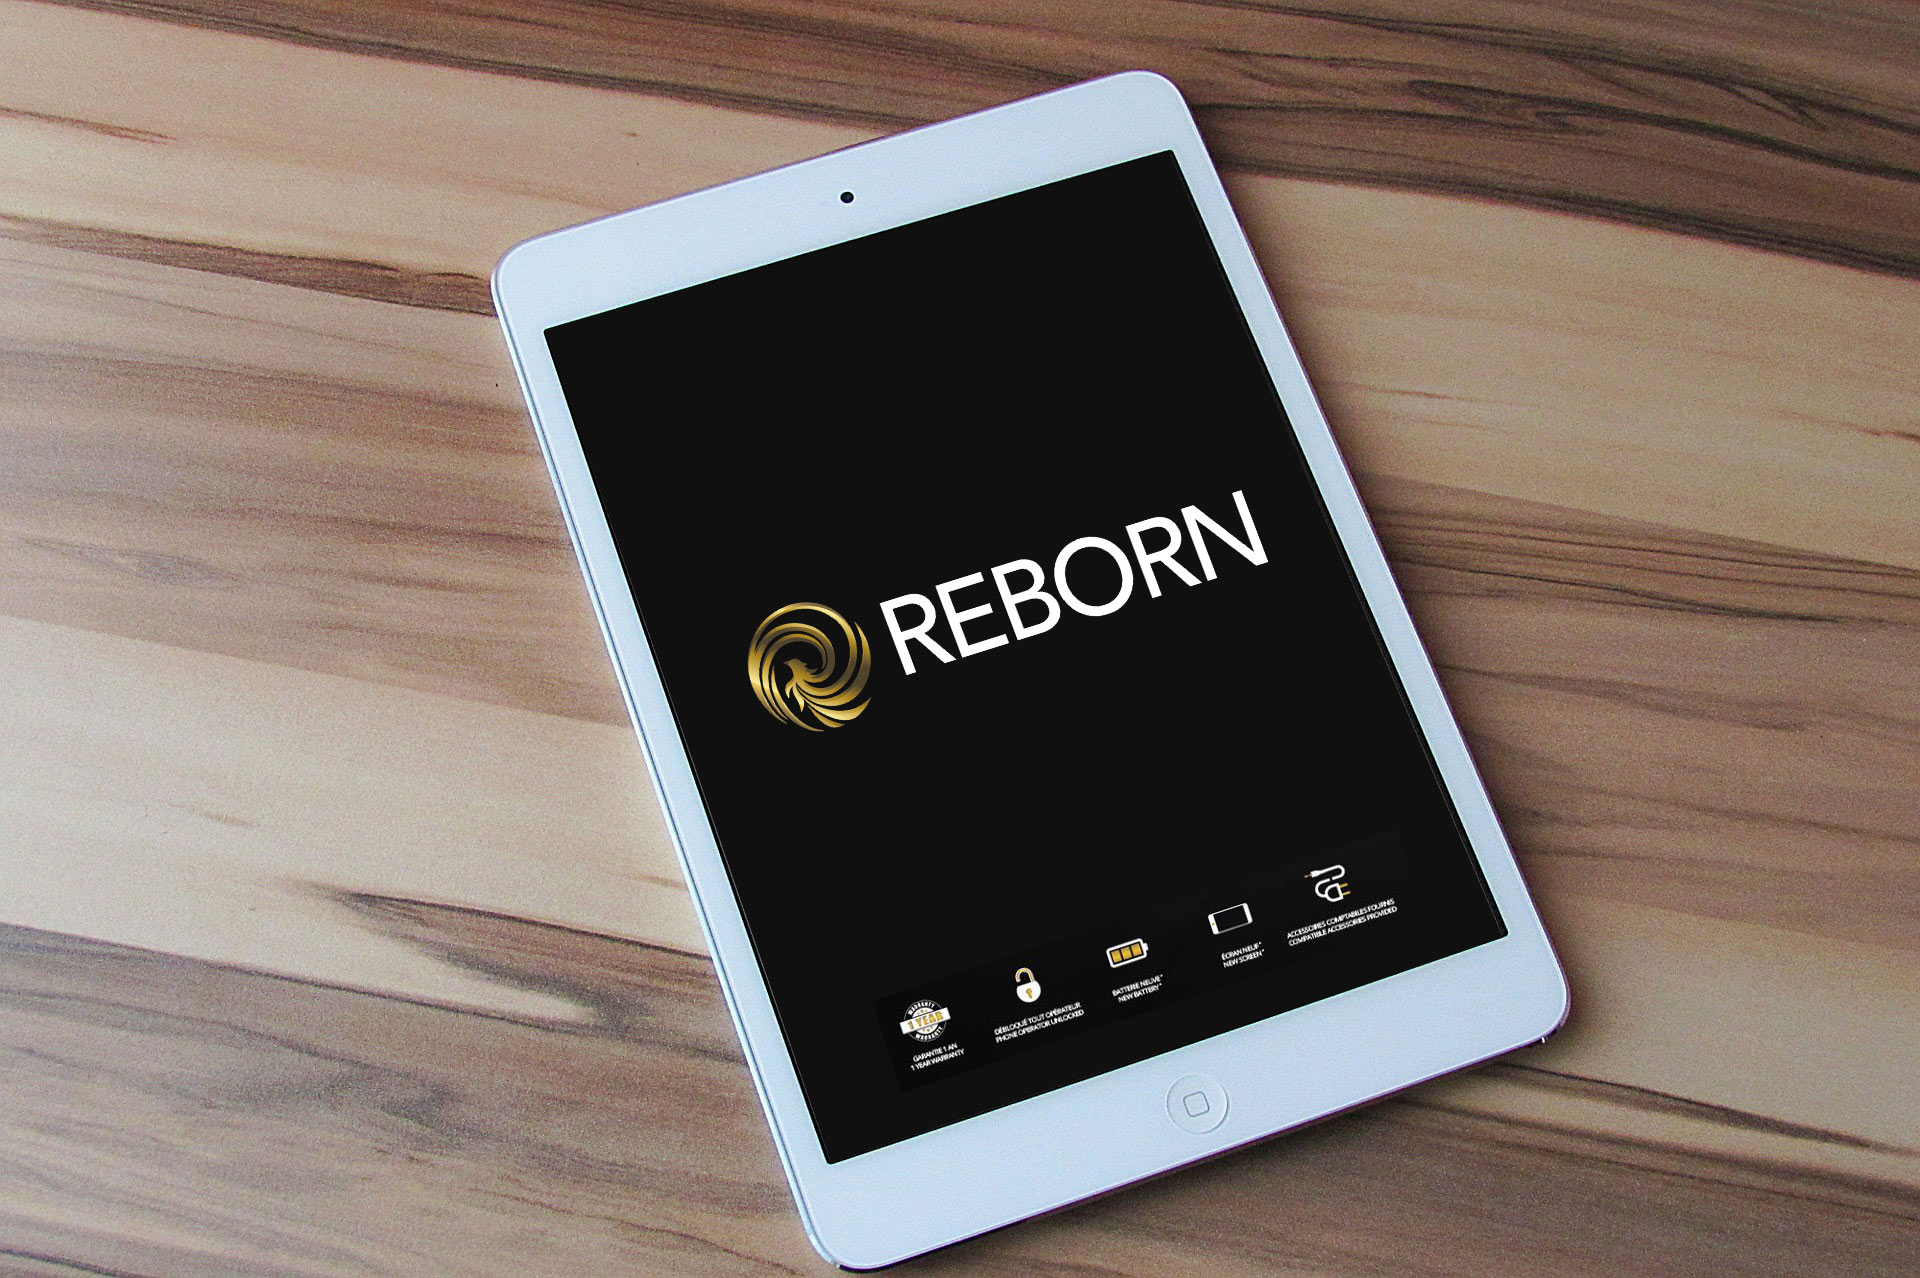 REBORN - reconditionnement IPAD AIR, IMAC